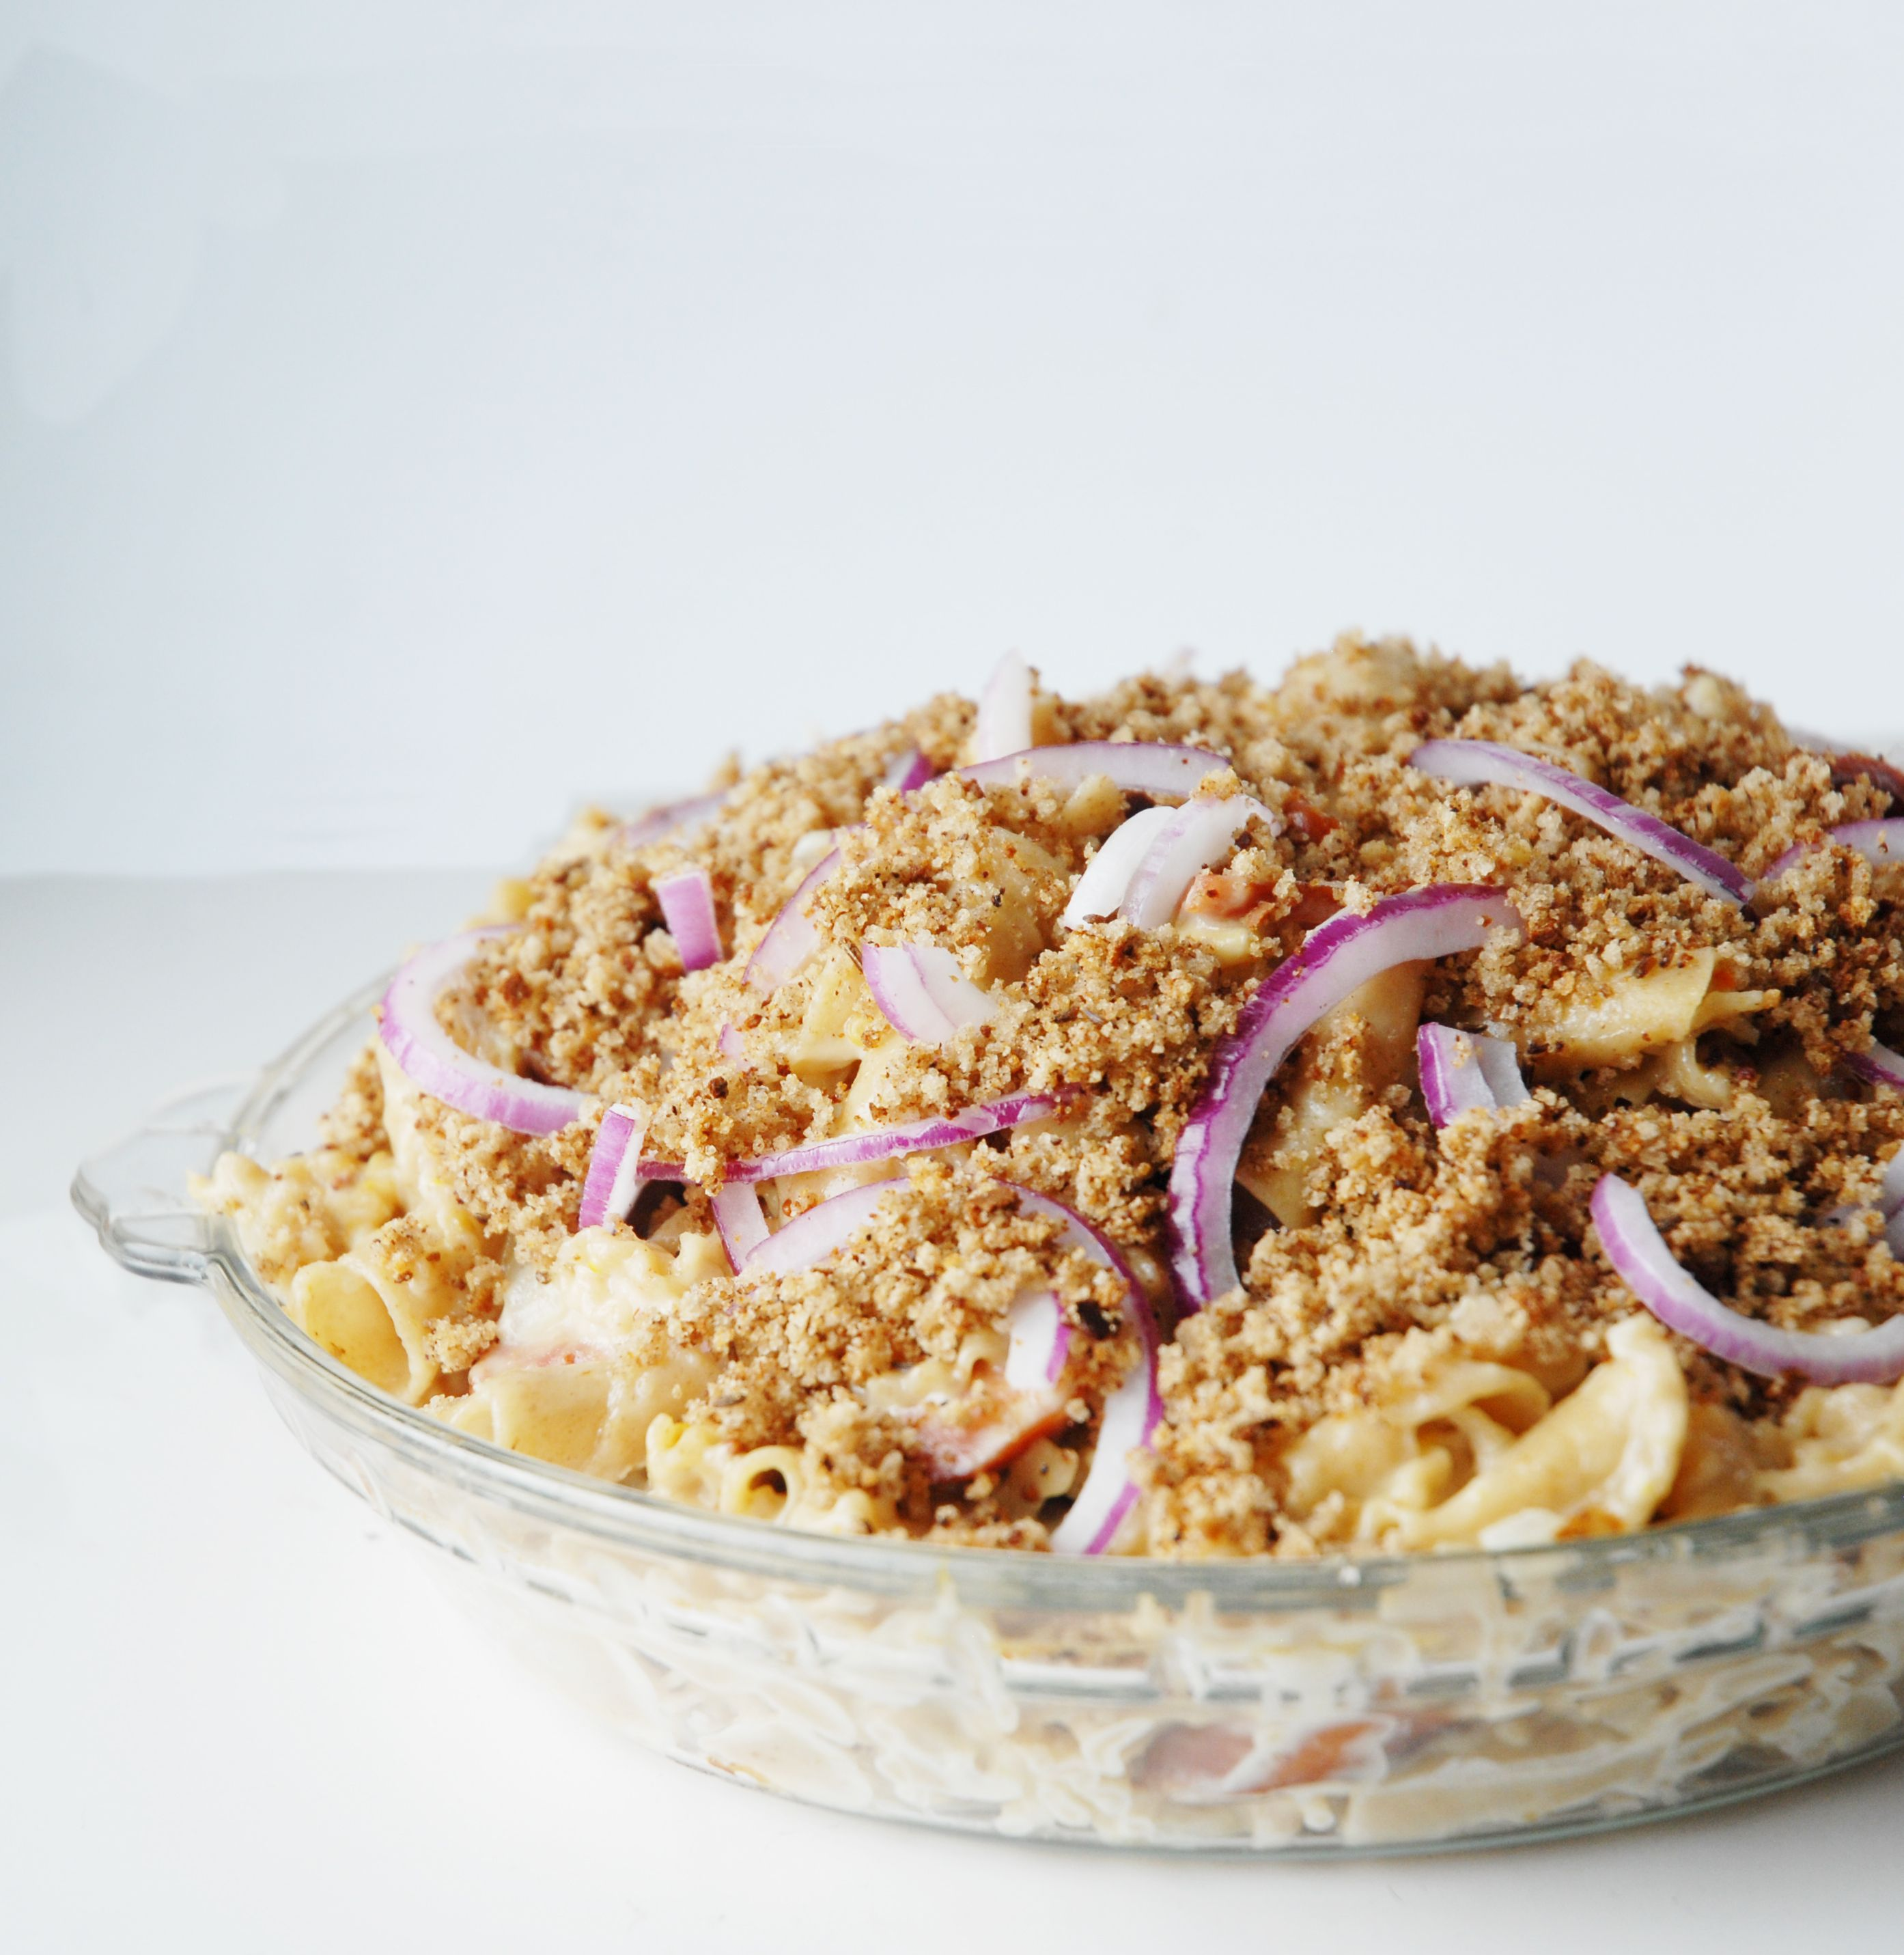 Wisconsin limburger mac n cheese with bratwurst, red onions, and rye bread crumbs